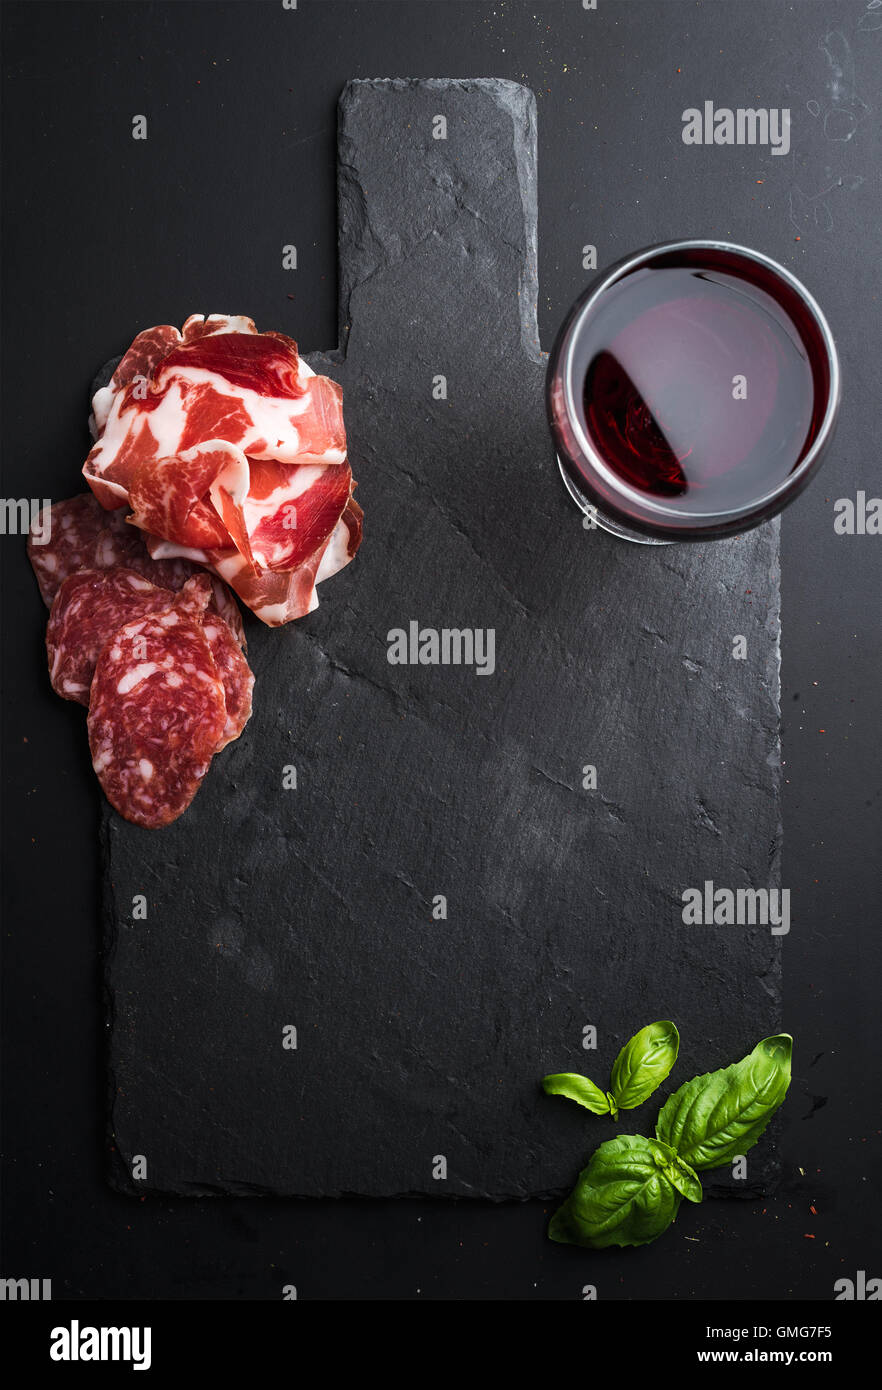 Glass of red wine, meat appetizer and basil on black  slate stone board over dark background - Stock Image